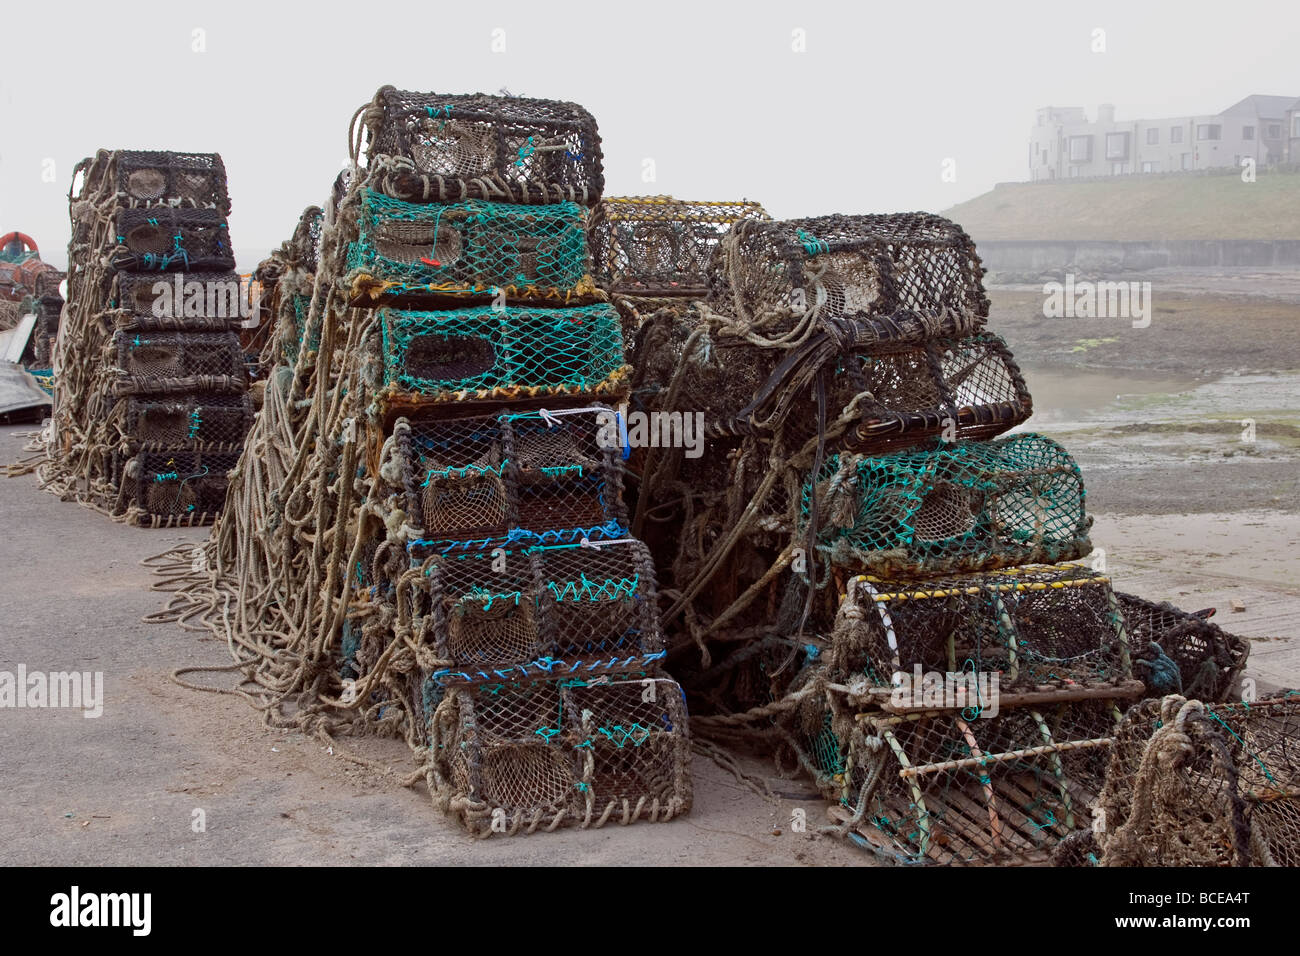 Crab Pots Stacked on Quay at Seahouse - Stock Image